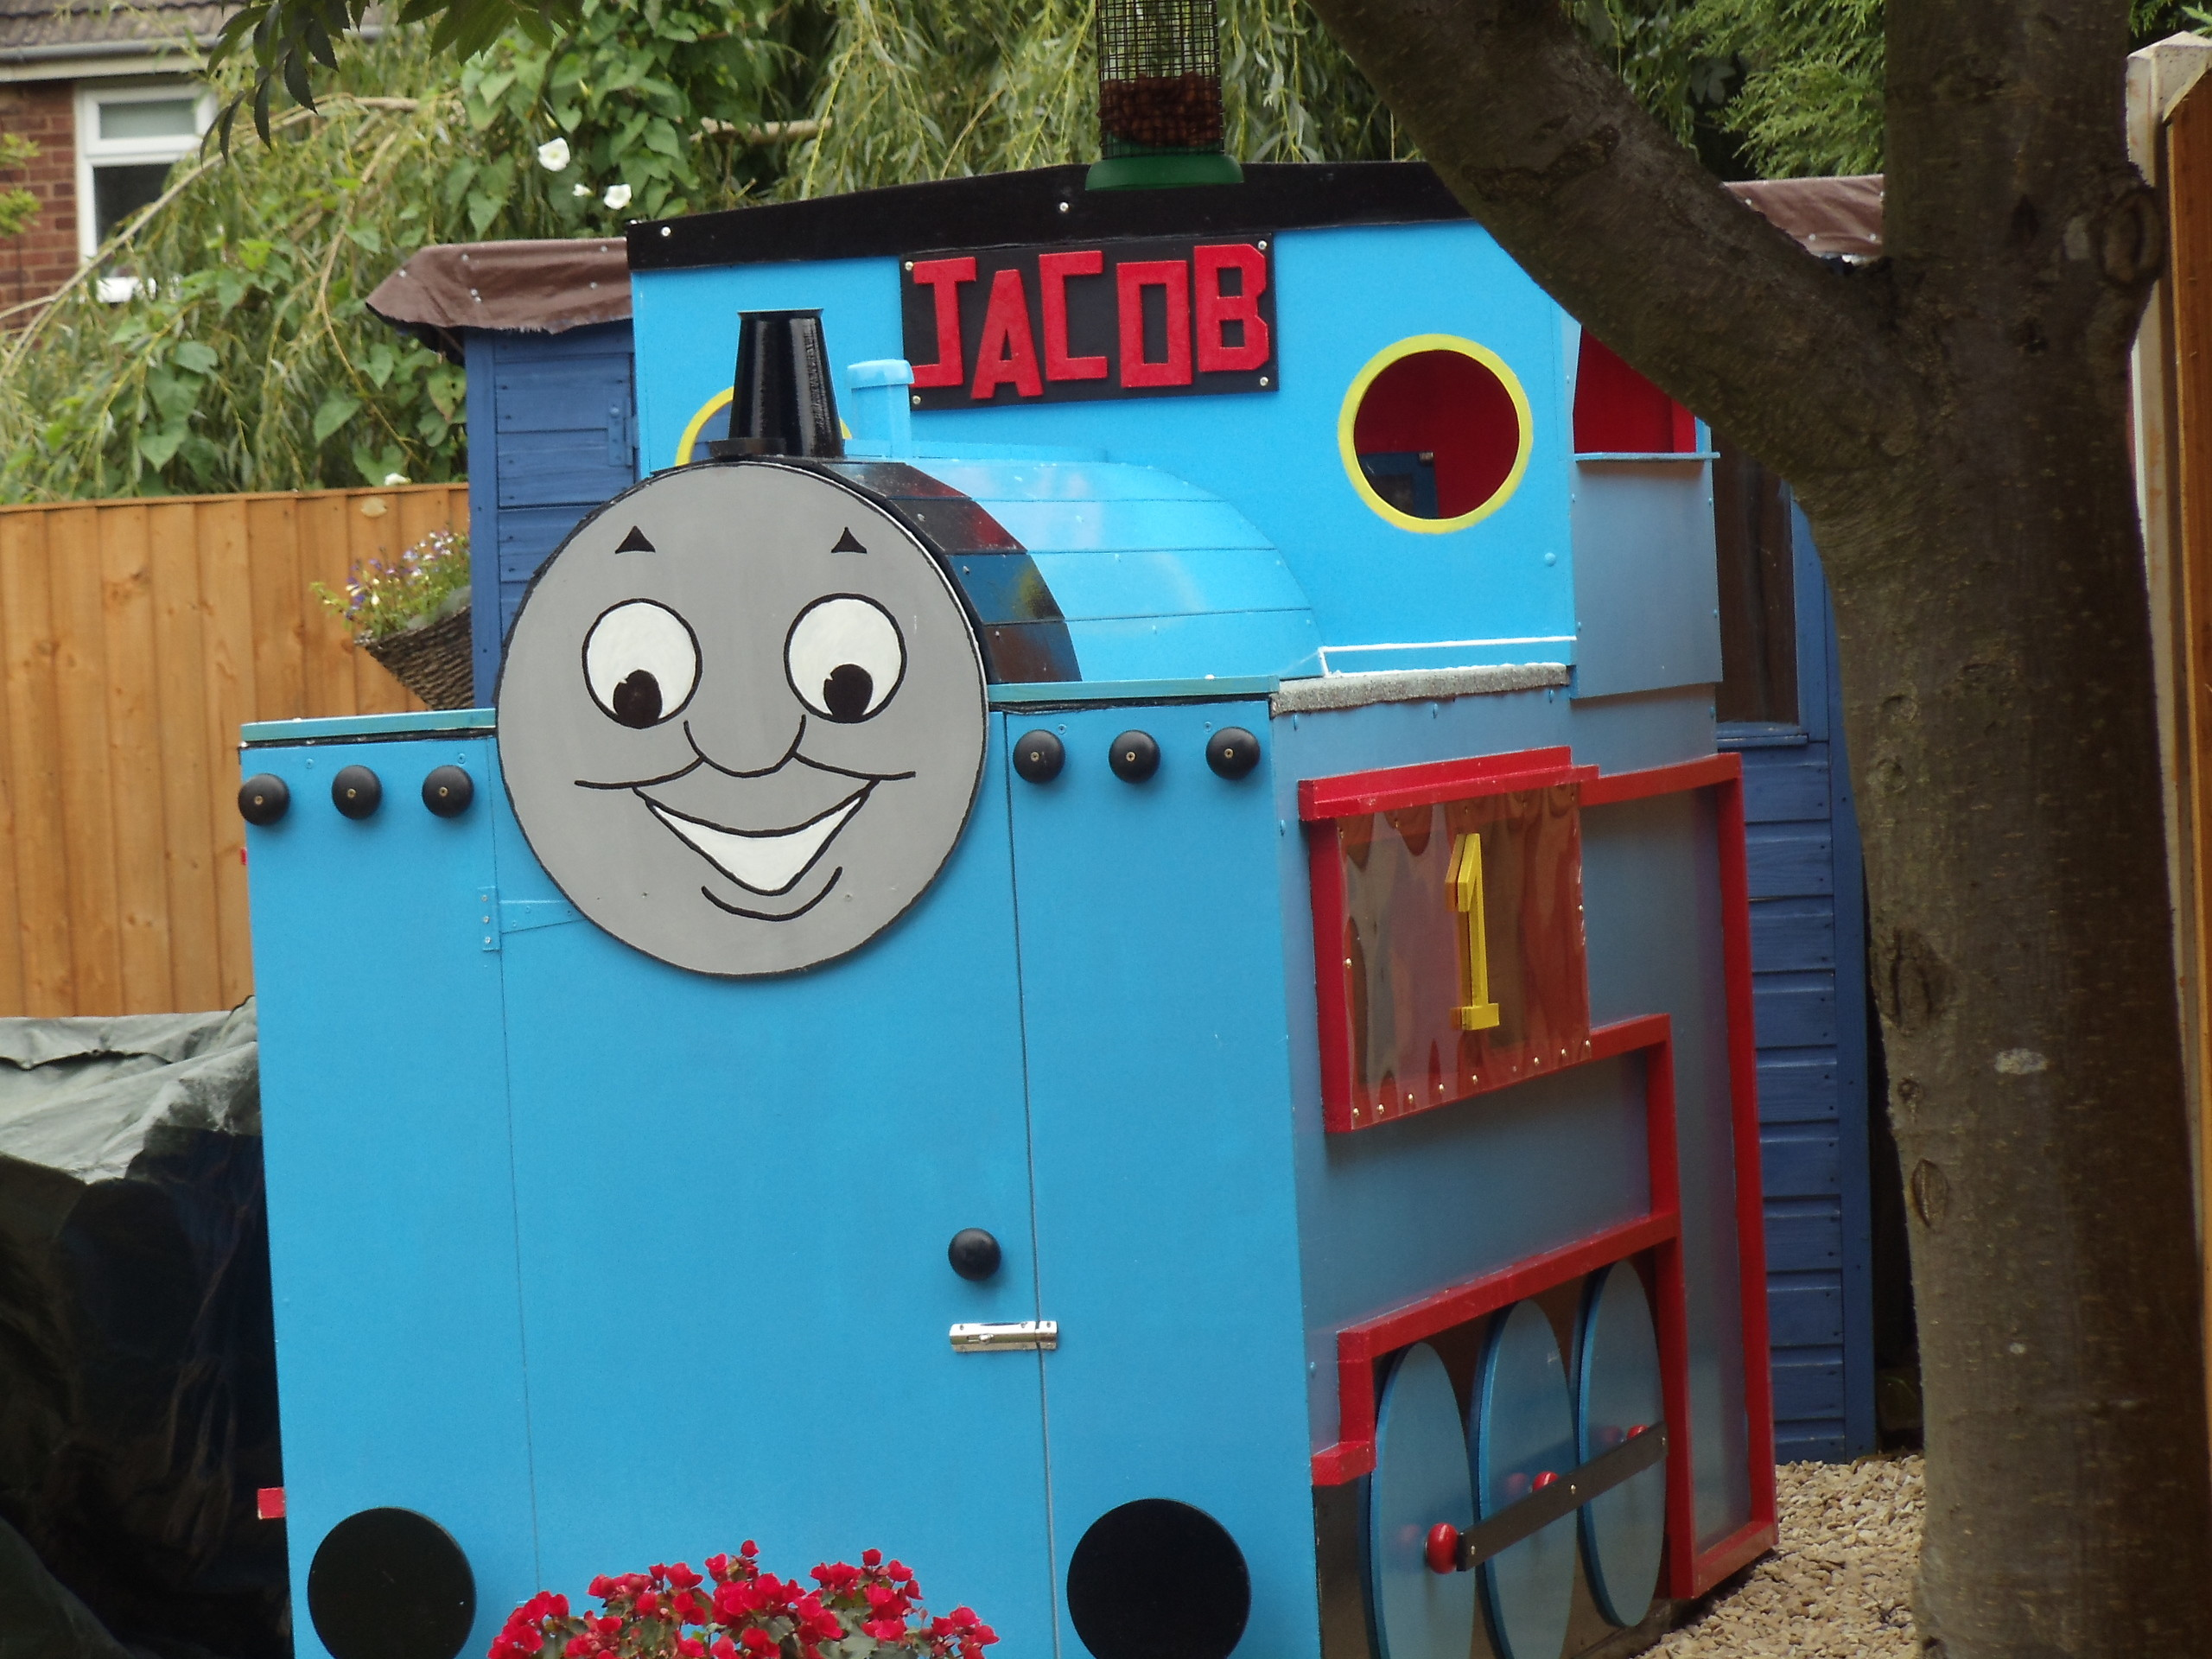 2560x1920 Thomas the Tank Engine images thomas playhouse HD wallpaper and background  photos